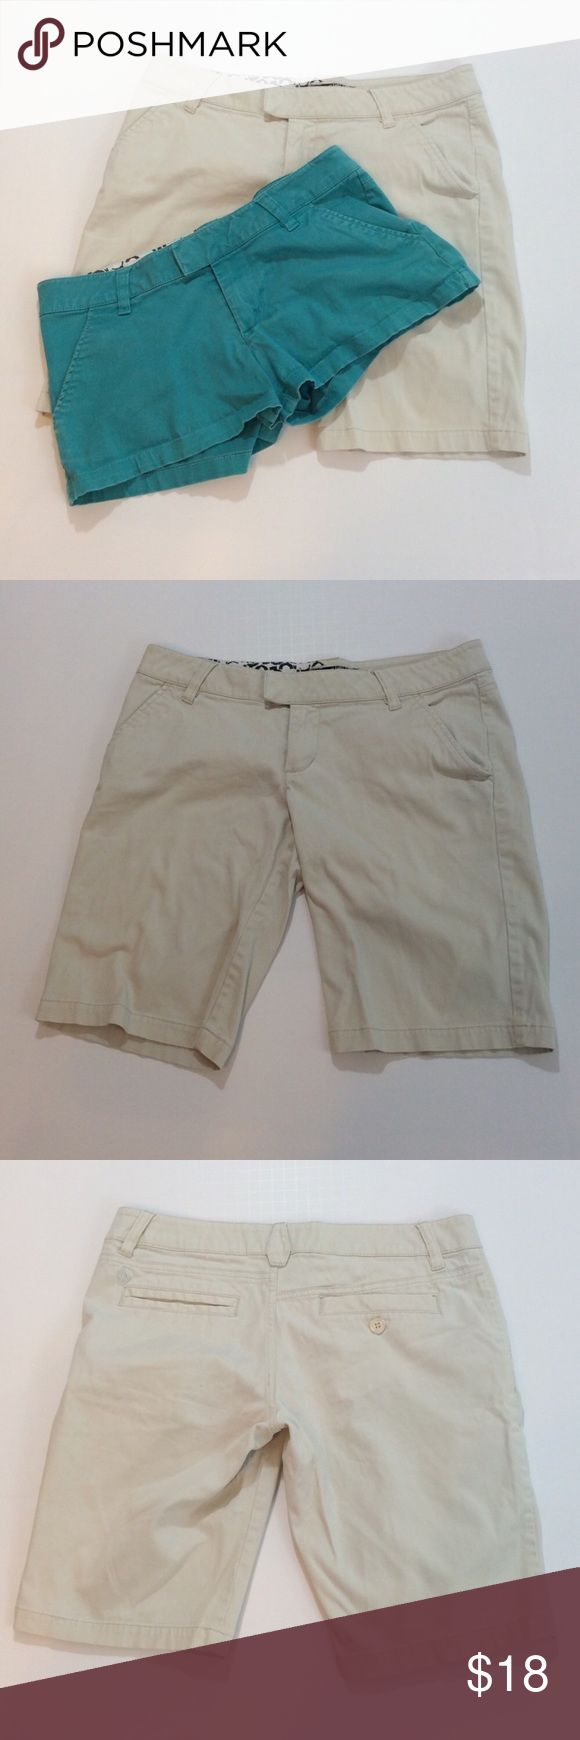 """2 pairs Volcom shorts size 3 2 pairs Volcom shorts size 3, both pairs have a waste of 26 a rise of  7 1/4""""and a 31 inch band.  The khaki shorts have a 10 1/2 inch inseam and the turquoise pants have a 2 1/4 inch inseam. Spring, summer Volcom Shorts"""